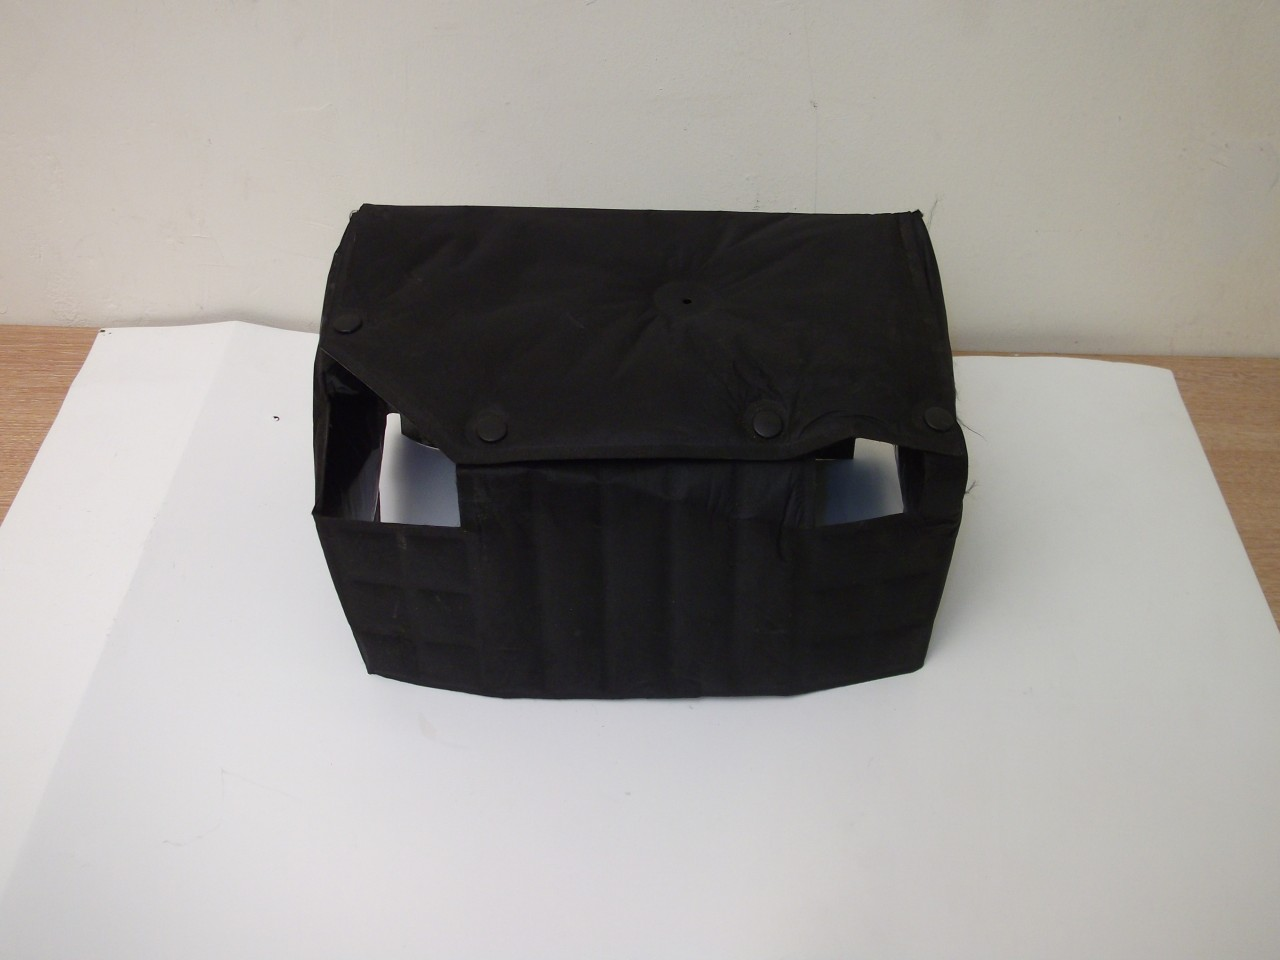 vauxhall zafira battery cover bag box plastic 1999 2005 ebay. Black Bedroom Furniture Sets. Home Design Ideas